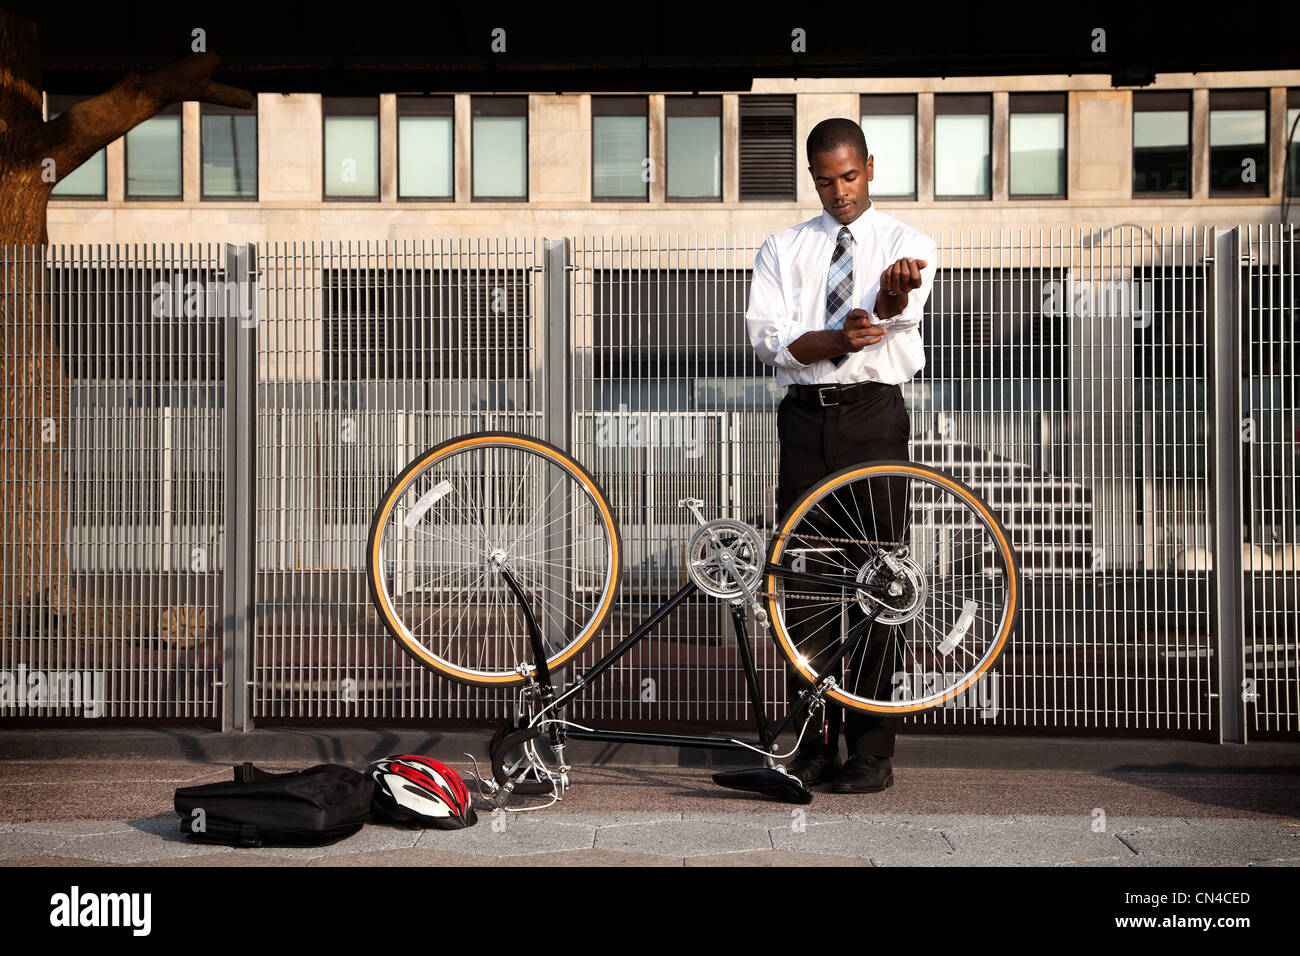 Young businessman rolling sleeves to fix bicycle - Stock Image